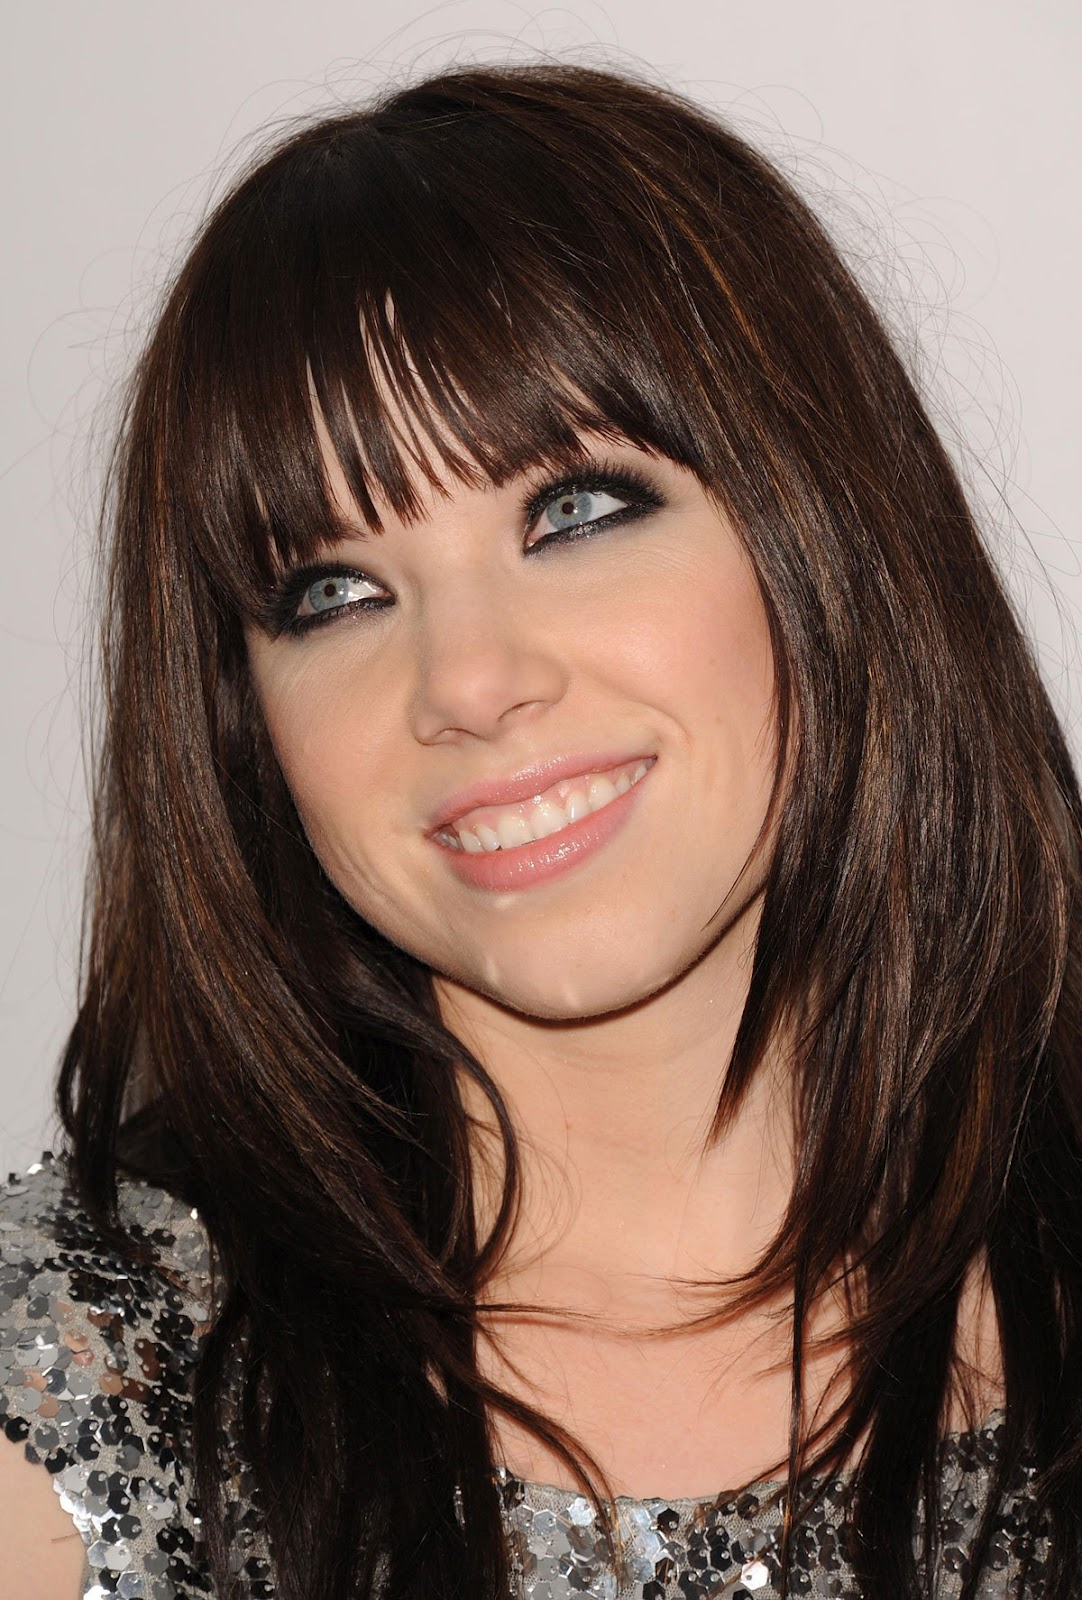 Carly Rae Jepsen - Beautiful lyrics